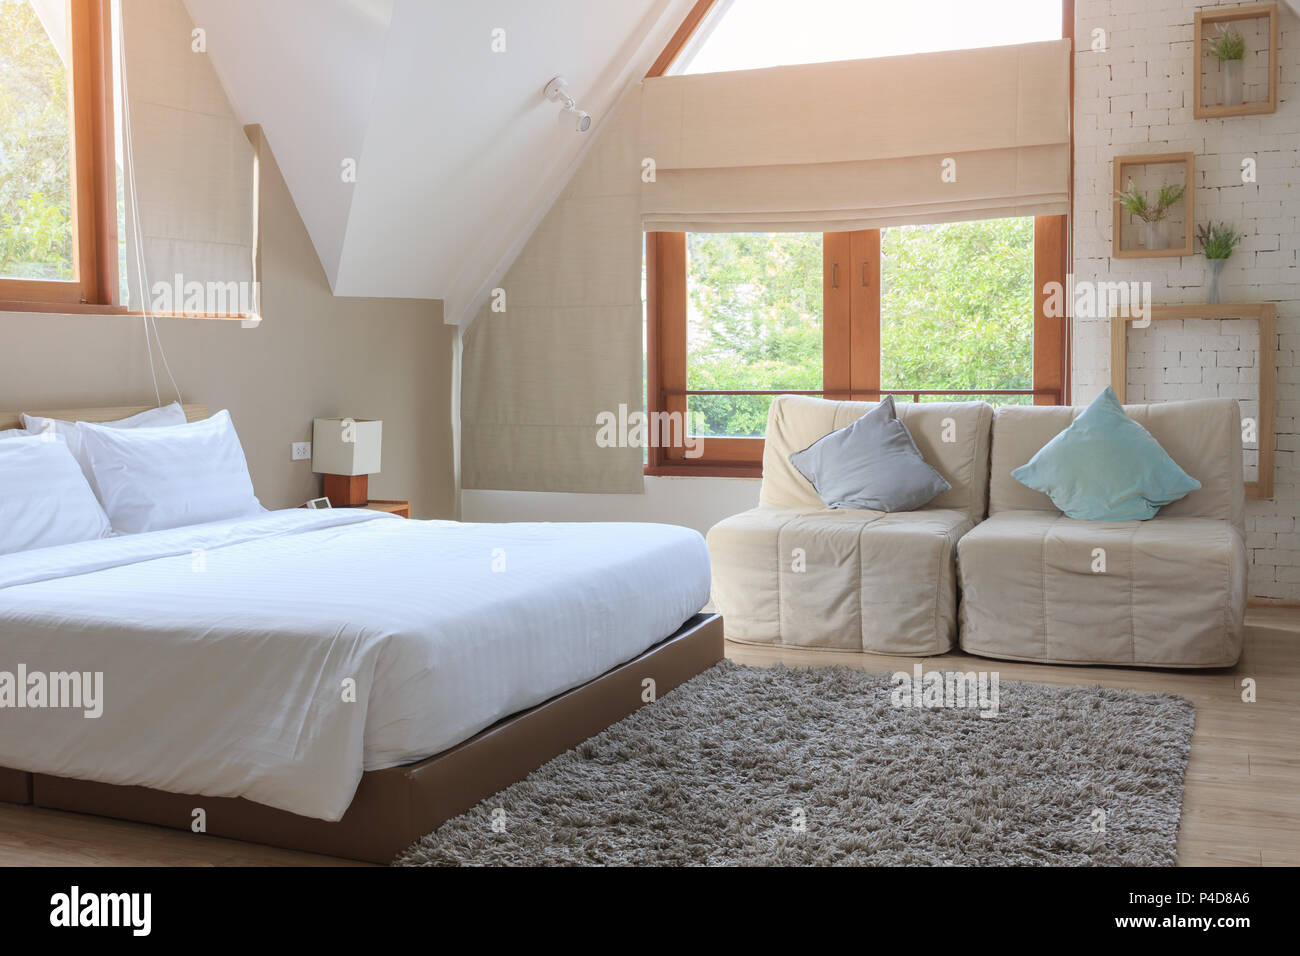 Vintage bedroom interior, with new white bed and pillow, at ...